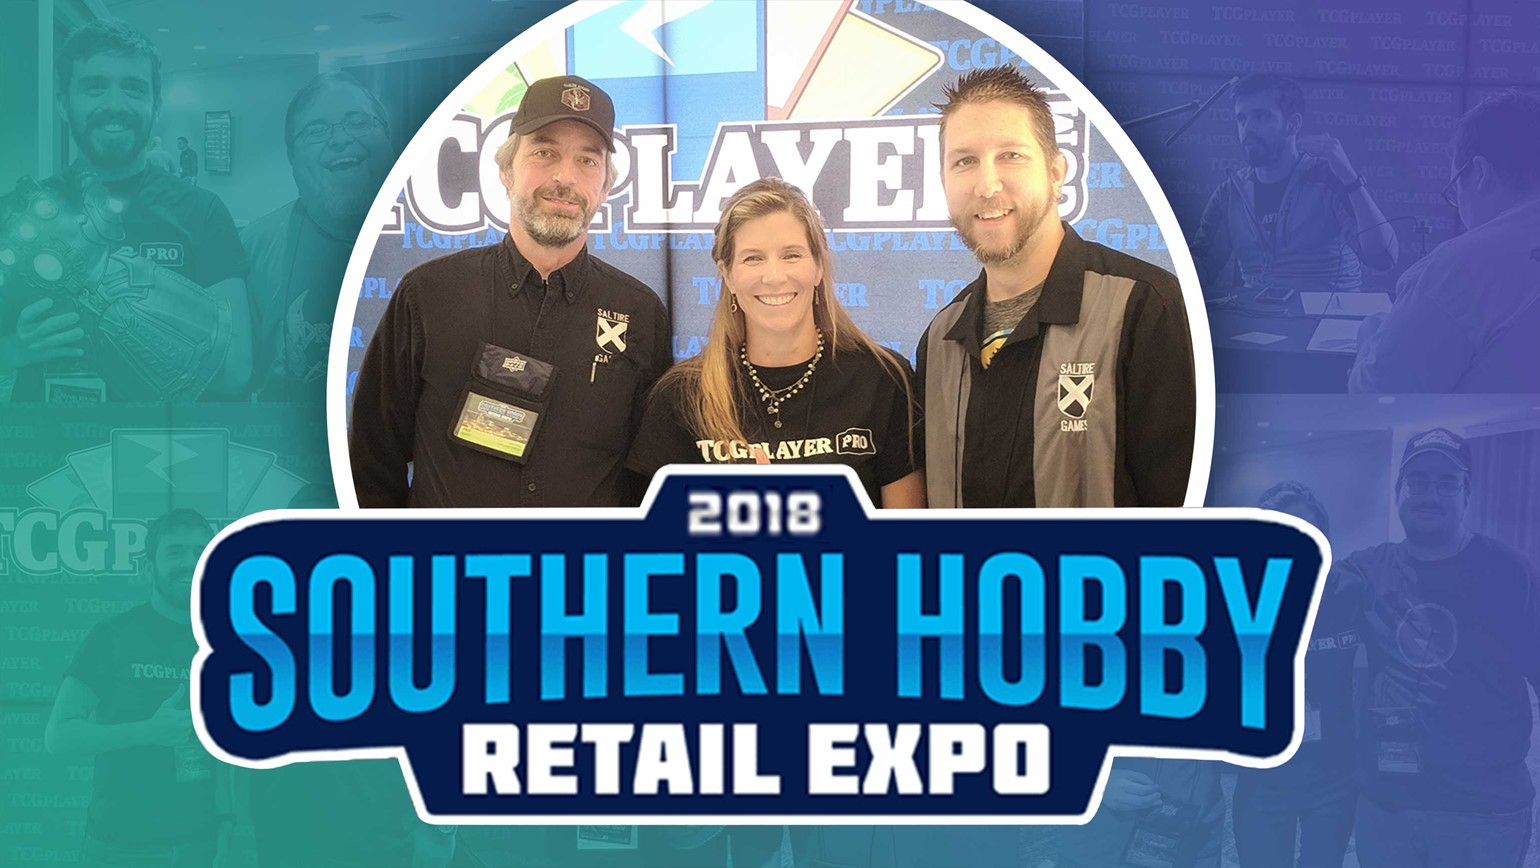 Game Store Owners at Southern Hobby Retail Expo Share Experience with TCGplayer Pro